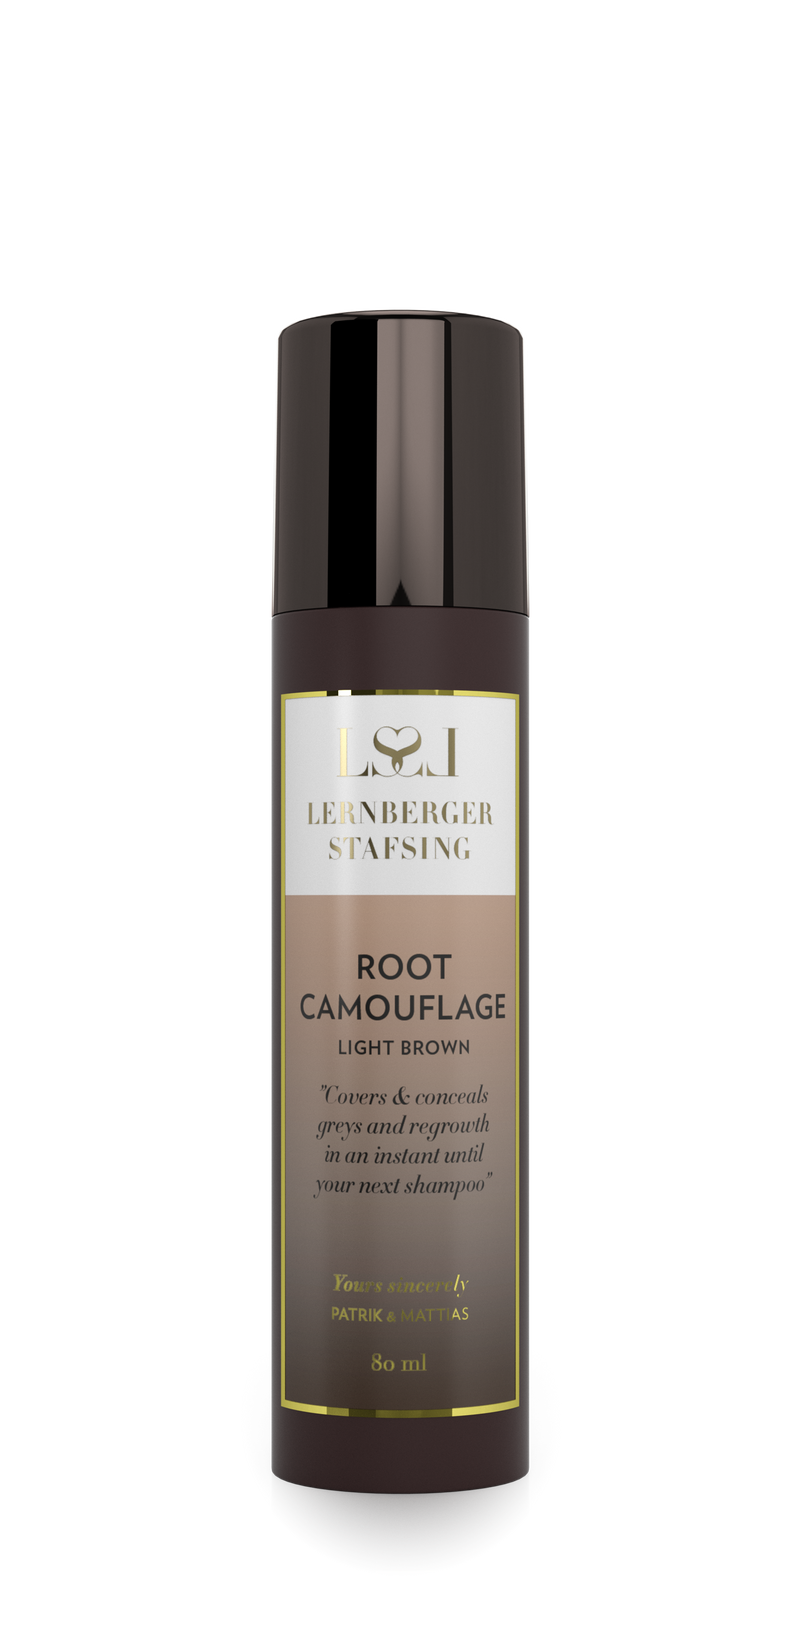 Root camouflage light brown